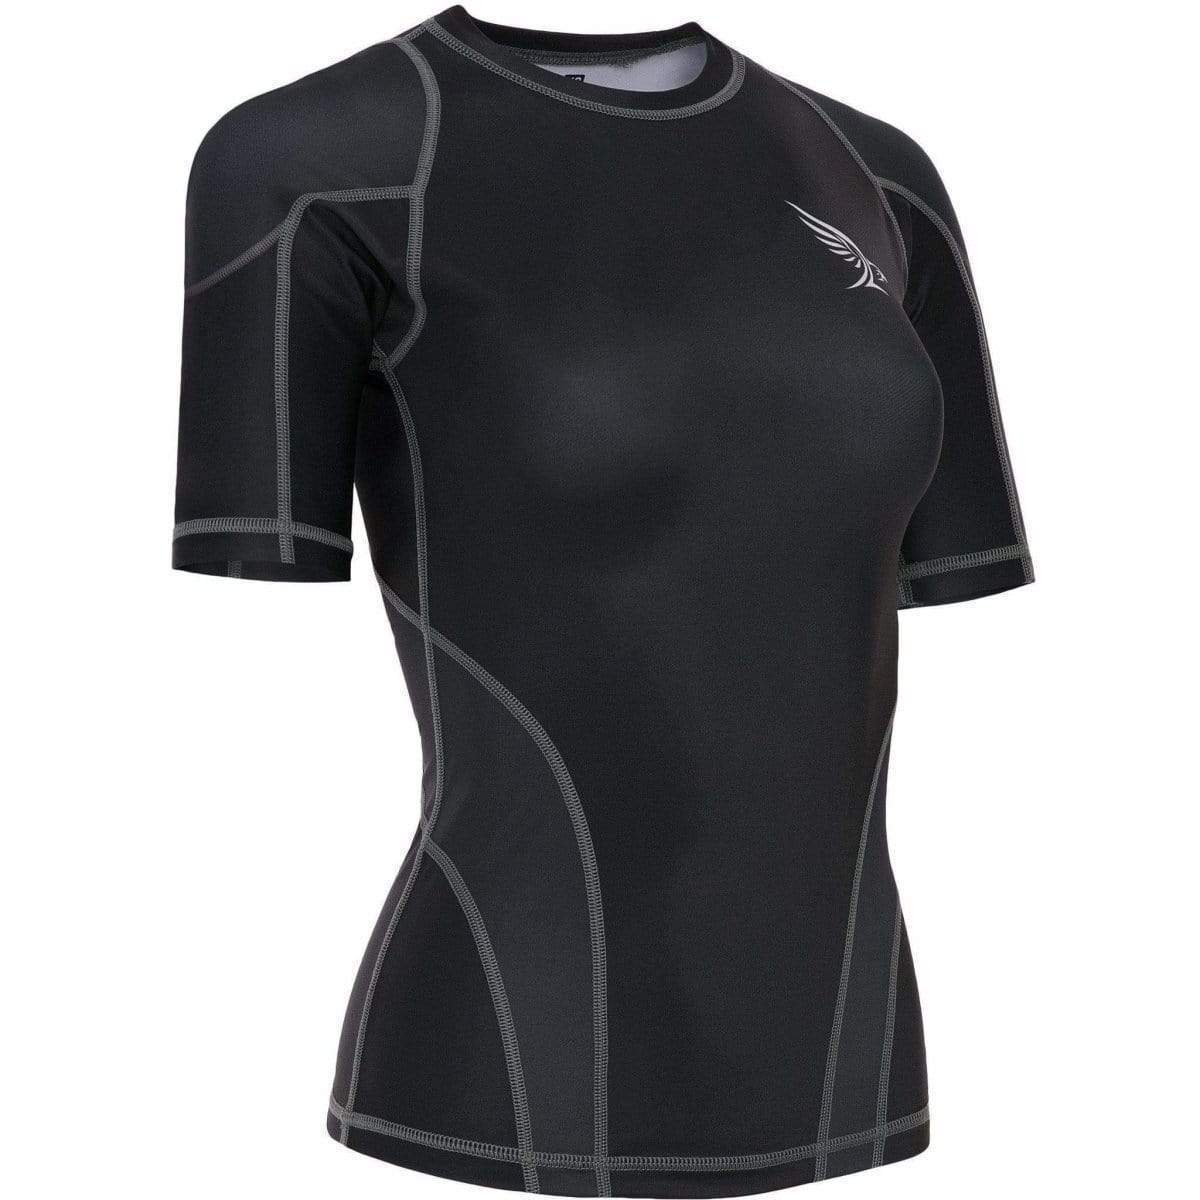 Habrok Rash Guard XS / BLACK Pugnator 2.0 | Rash Guard | Women | Half Sleeve | Black